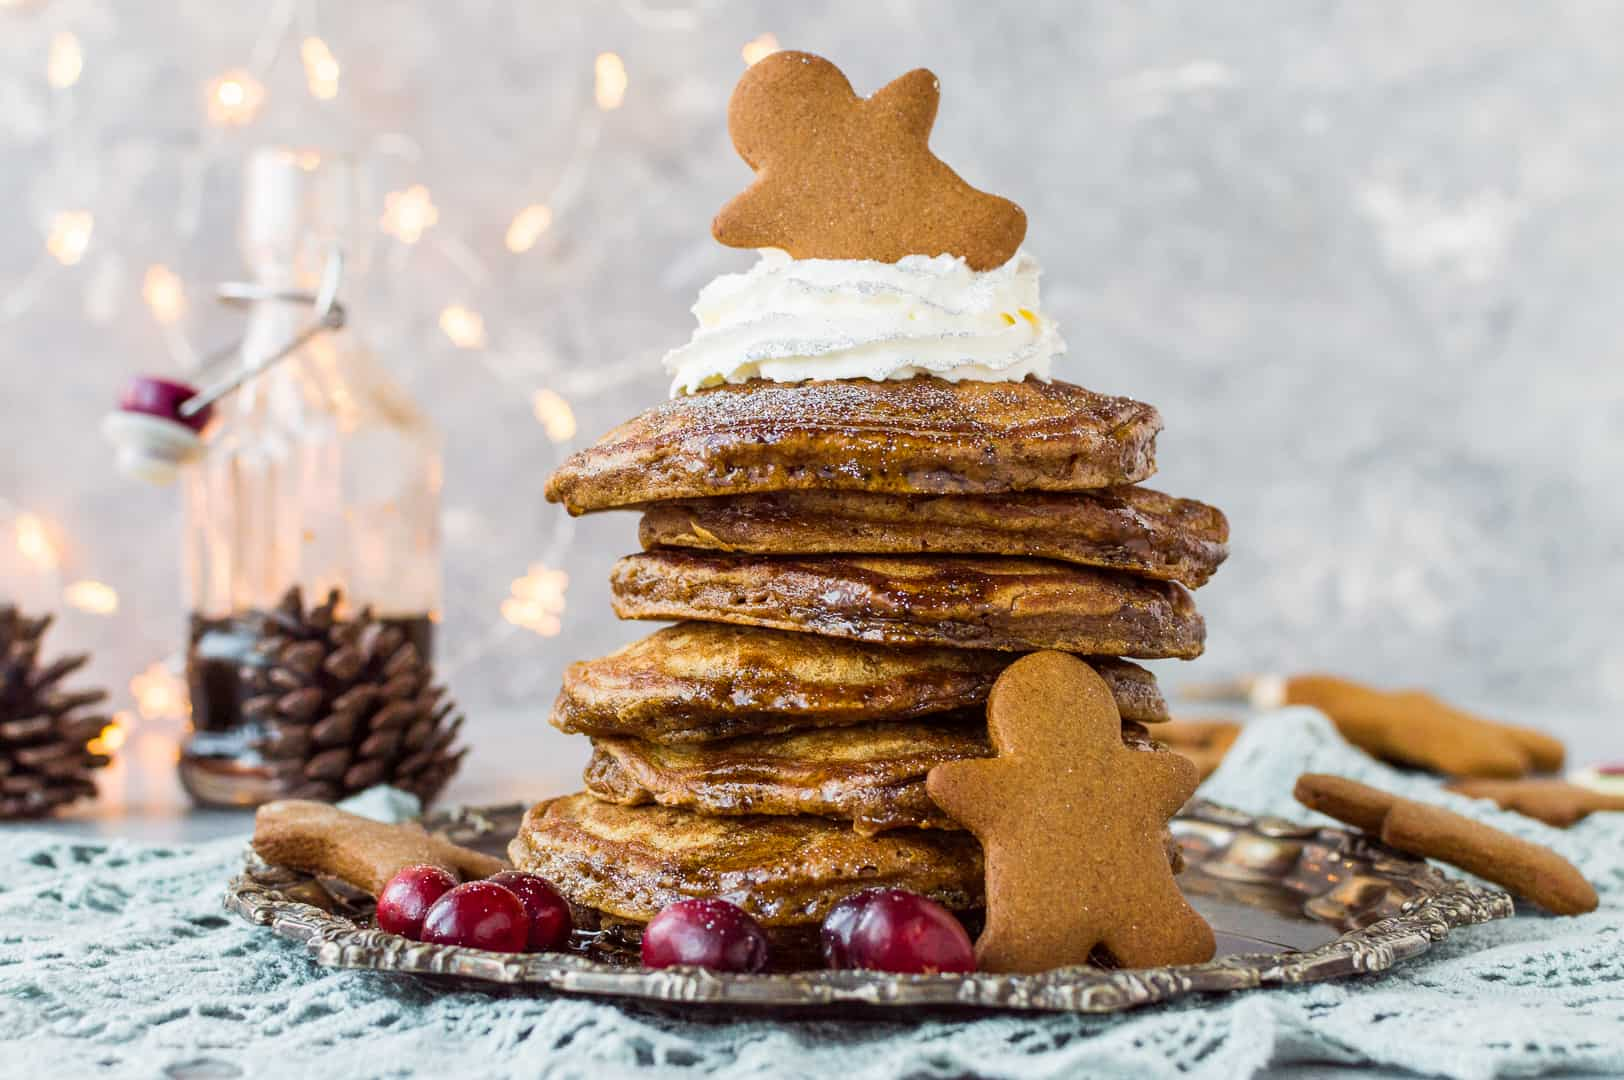 Gingerbread pancakes with gingerbread syrup – soft, fluffy gingerbread flavoured pancakes topped with gingerbread syrup, the perfect festive breakfast!